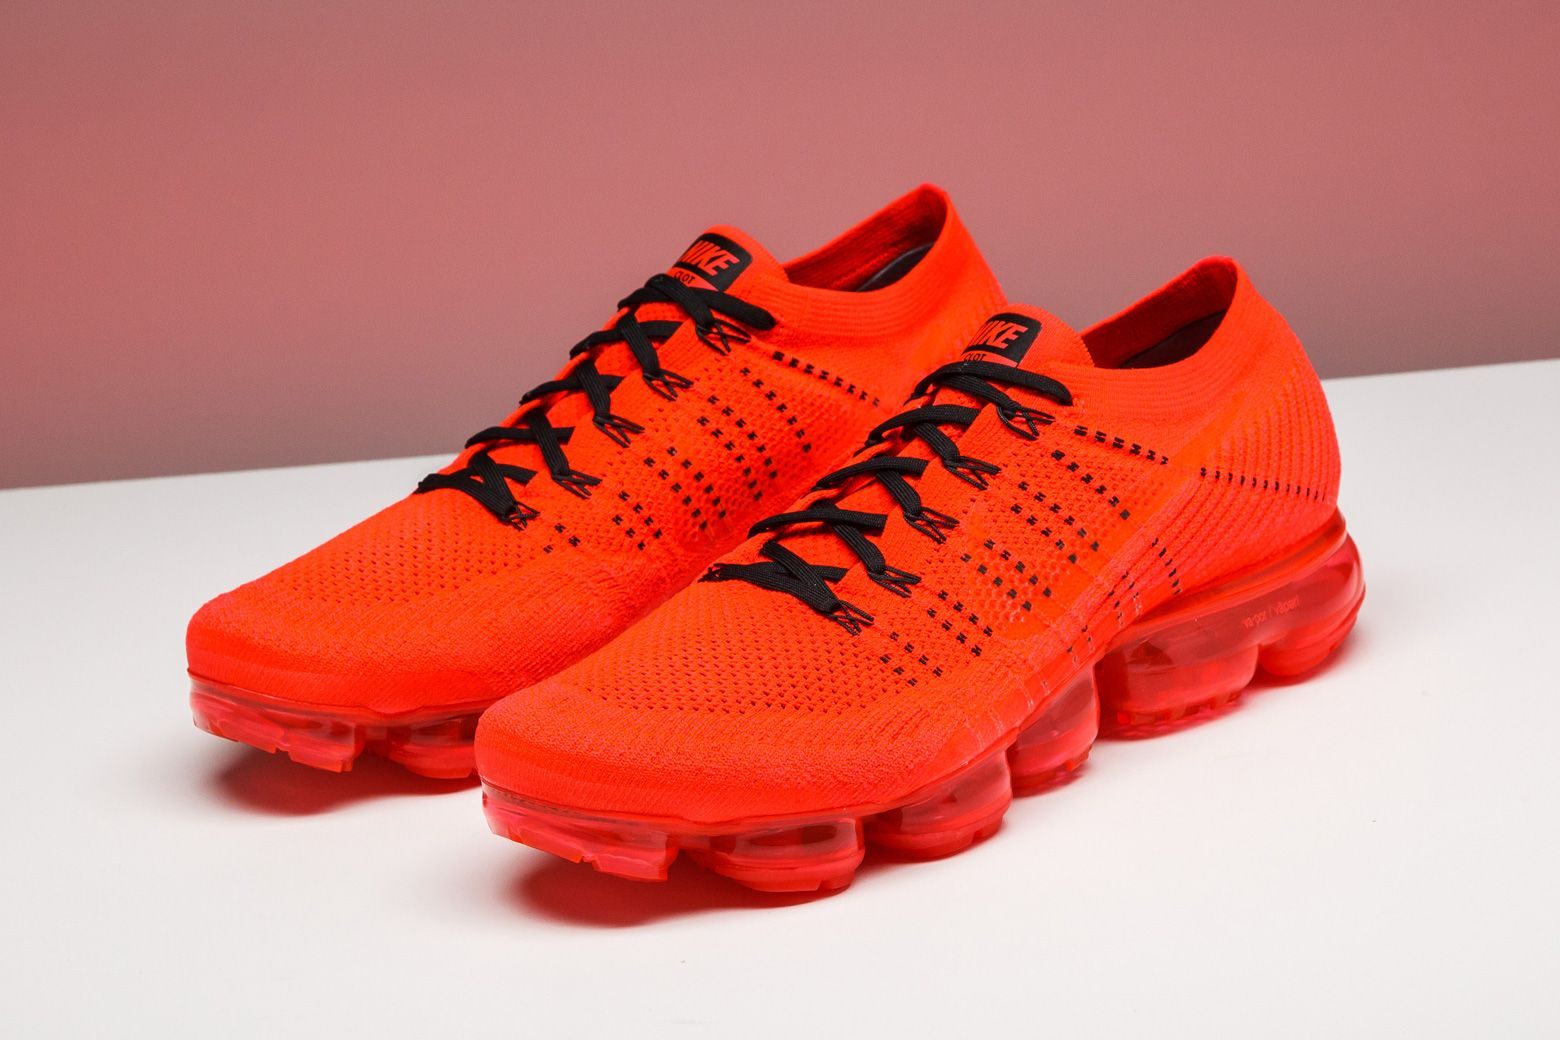 6a211c82d8c The great minds at CLOT designed this vibrant red version of the Nike  VaporMax.